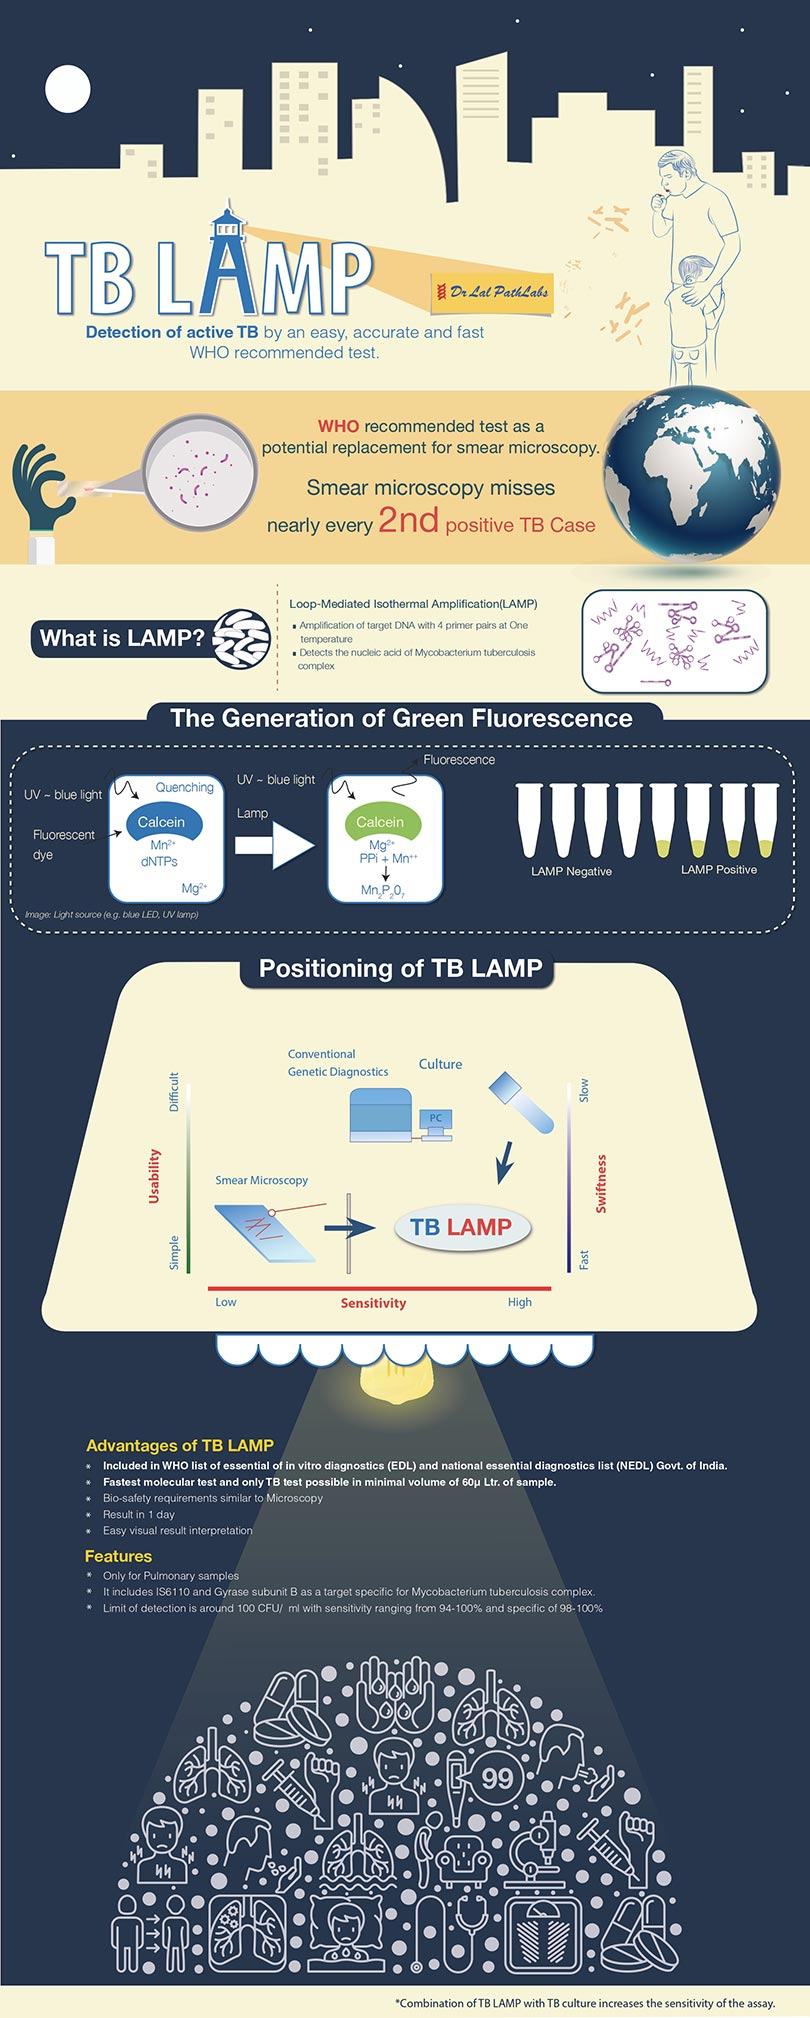 TB-LAMP Detection of Active TB